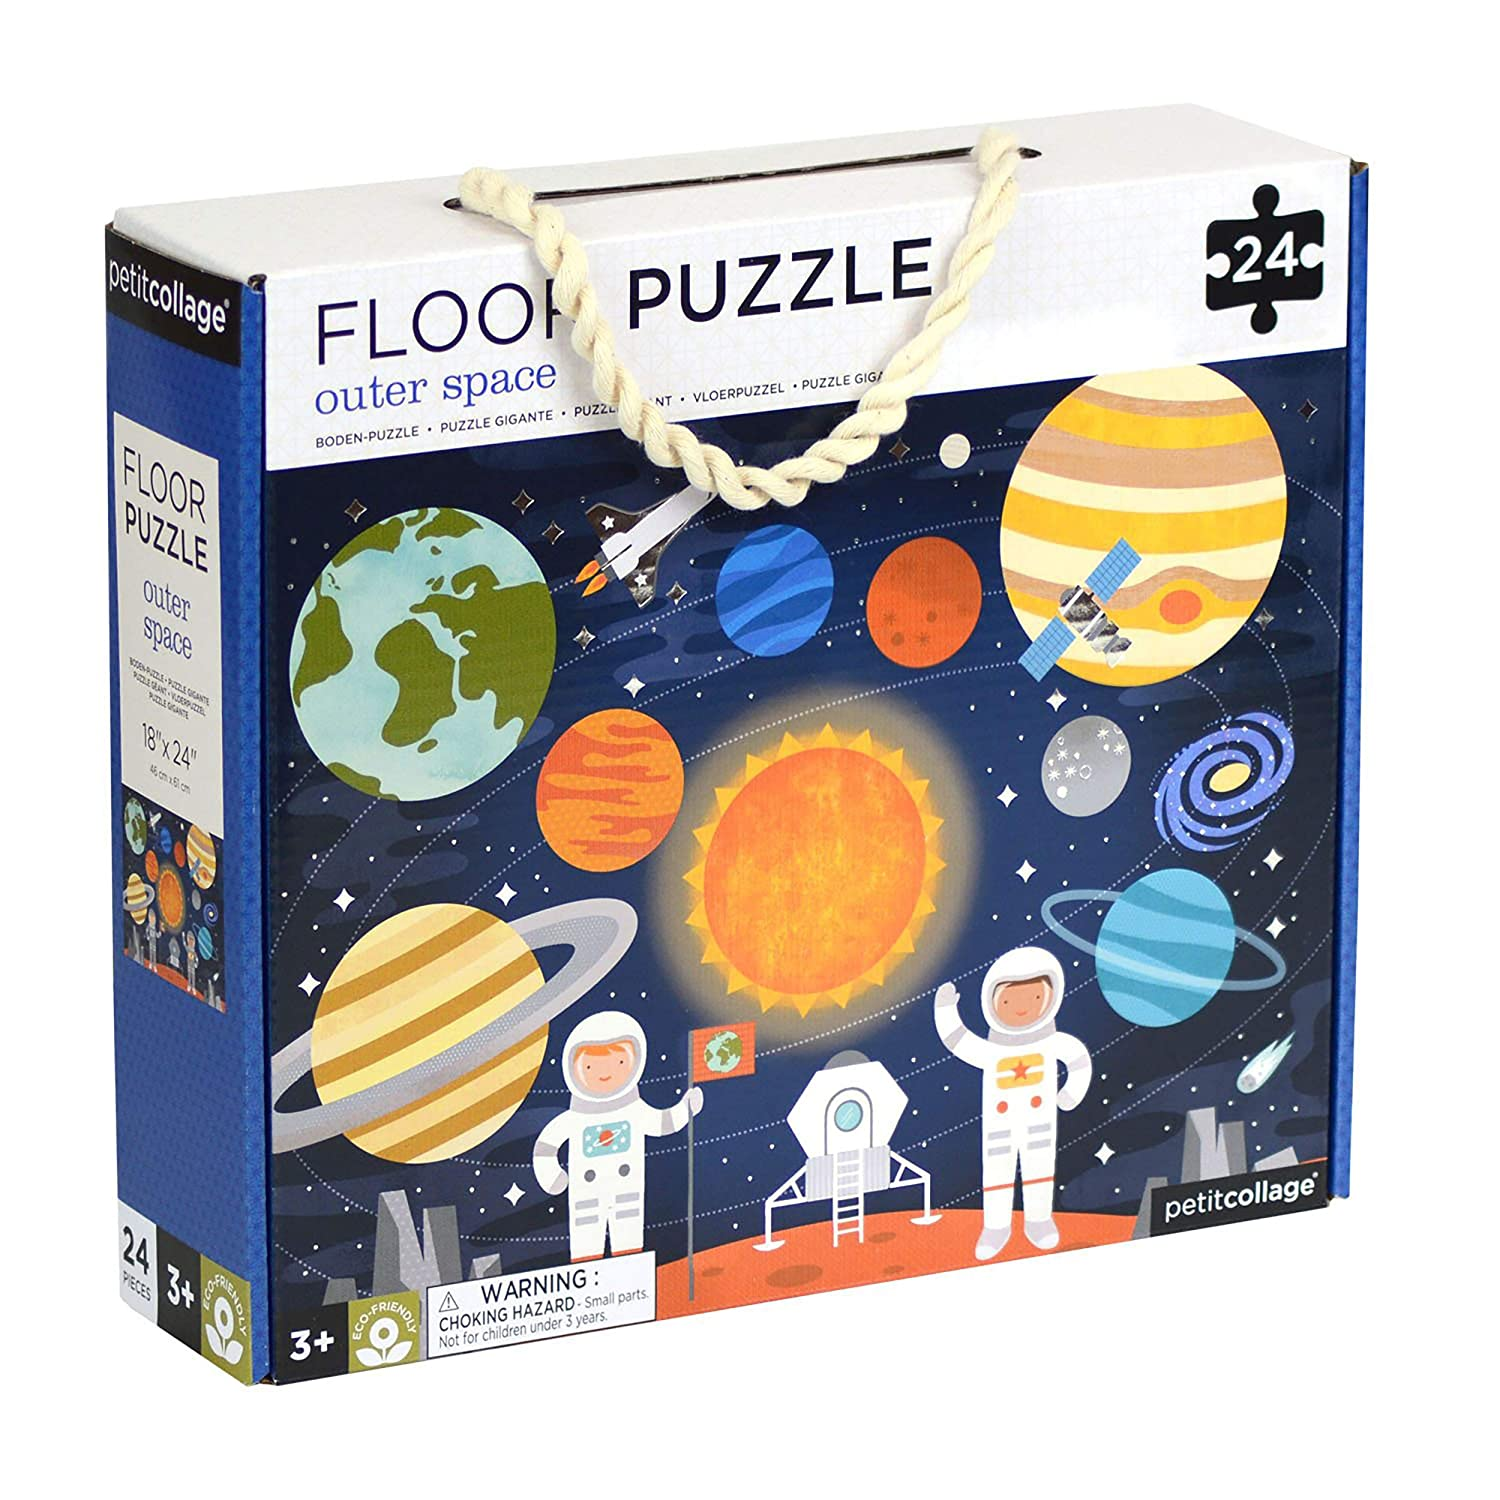 "Petit Collage Floor Puzzle, Outer Space, 24-Pieces – Large Puzzle for Kids, Completed Outer Space Jigsaw Puzzle Measures 18"" x 24"" – Makes a Great Gift Idea for Ages 3+"